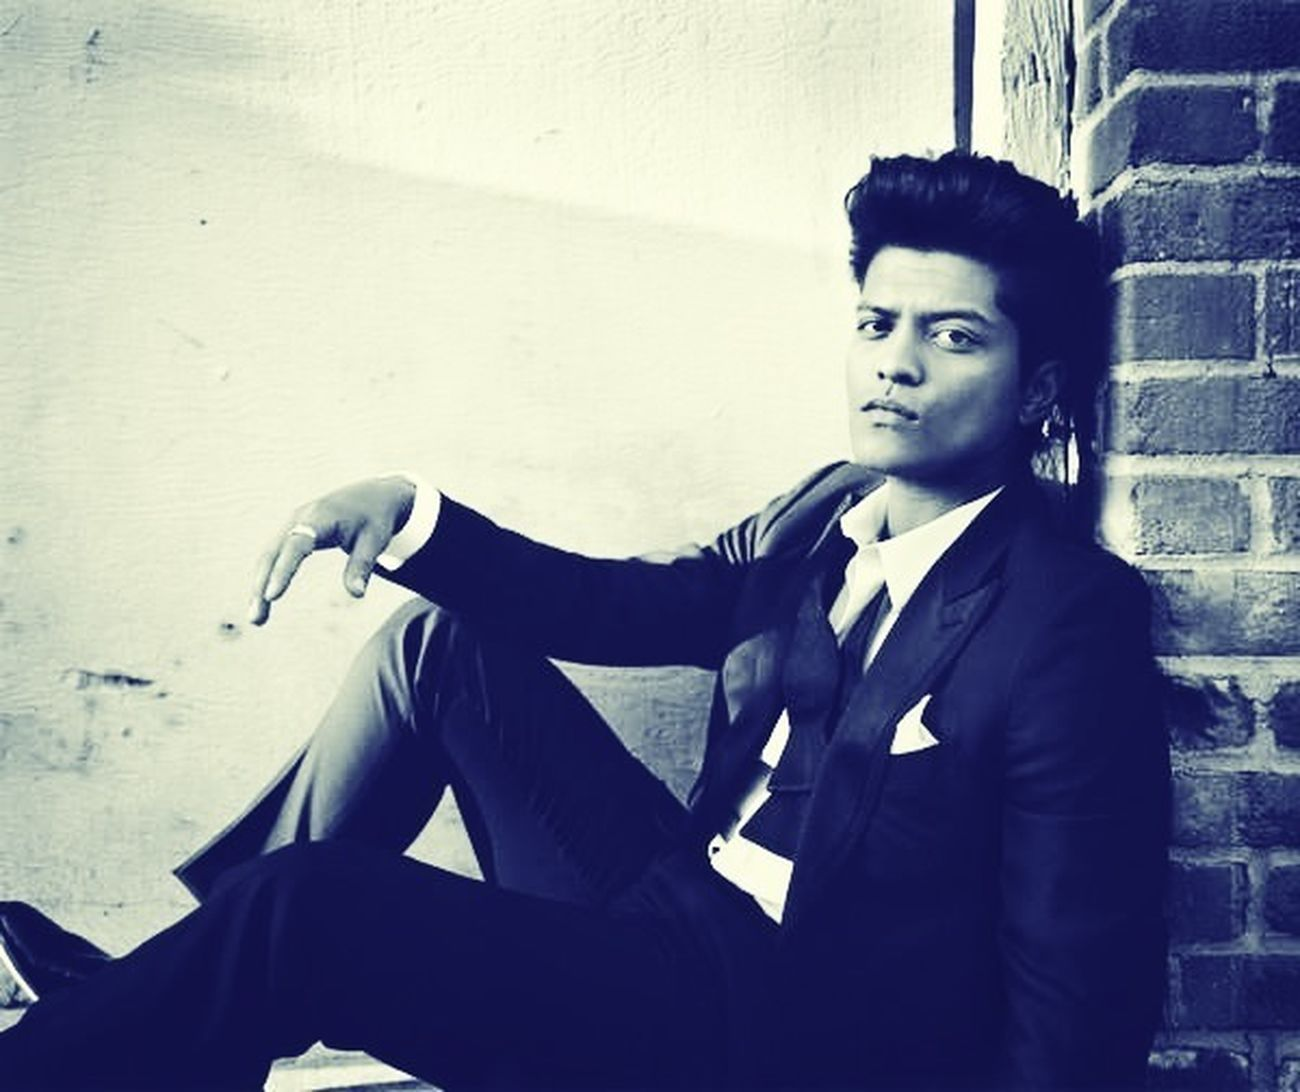 Bruno Mars The Best Singer In The Hole World I LOVE HIM♥ Oh Sexy Boy So Sexy Boy My Babyyyy ♥